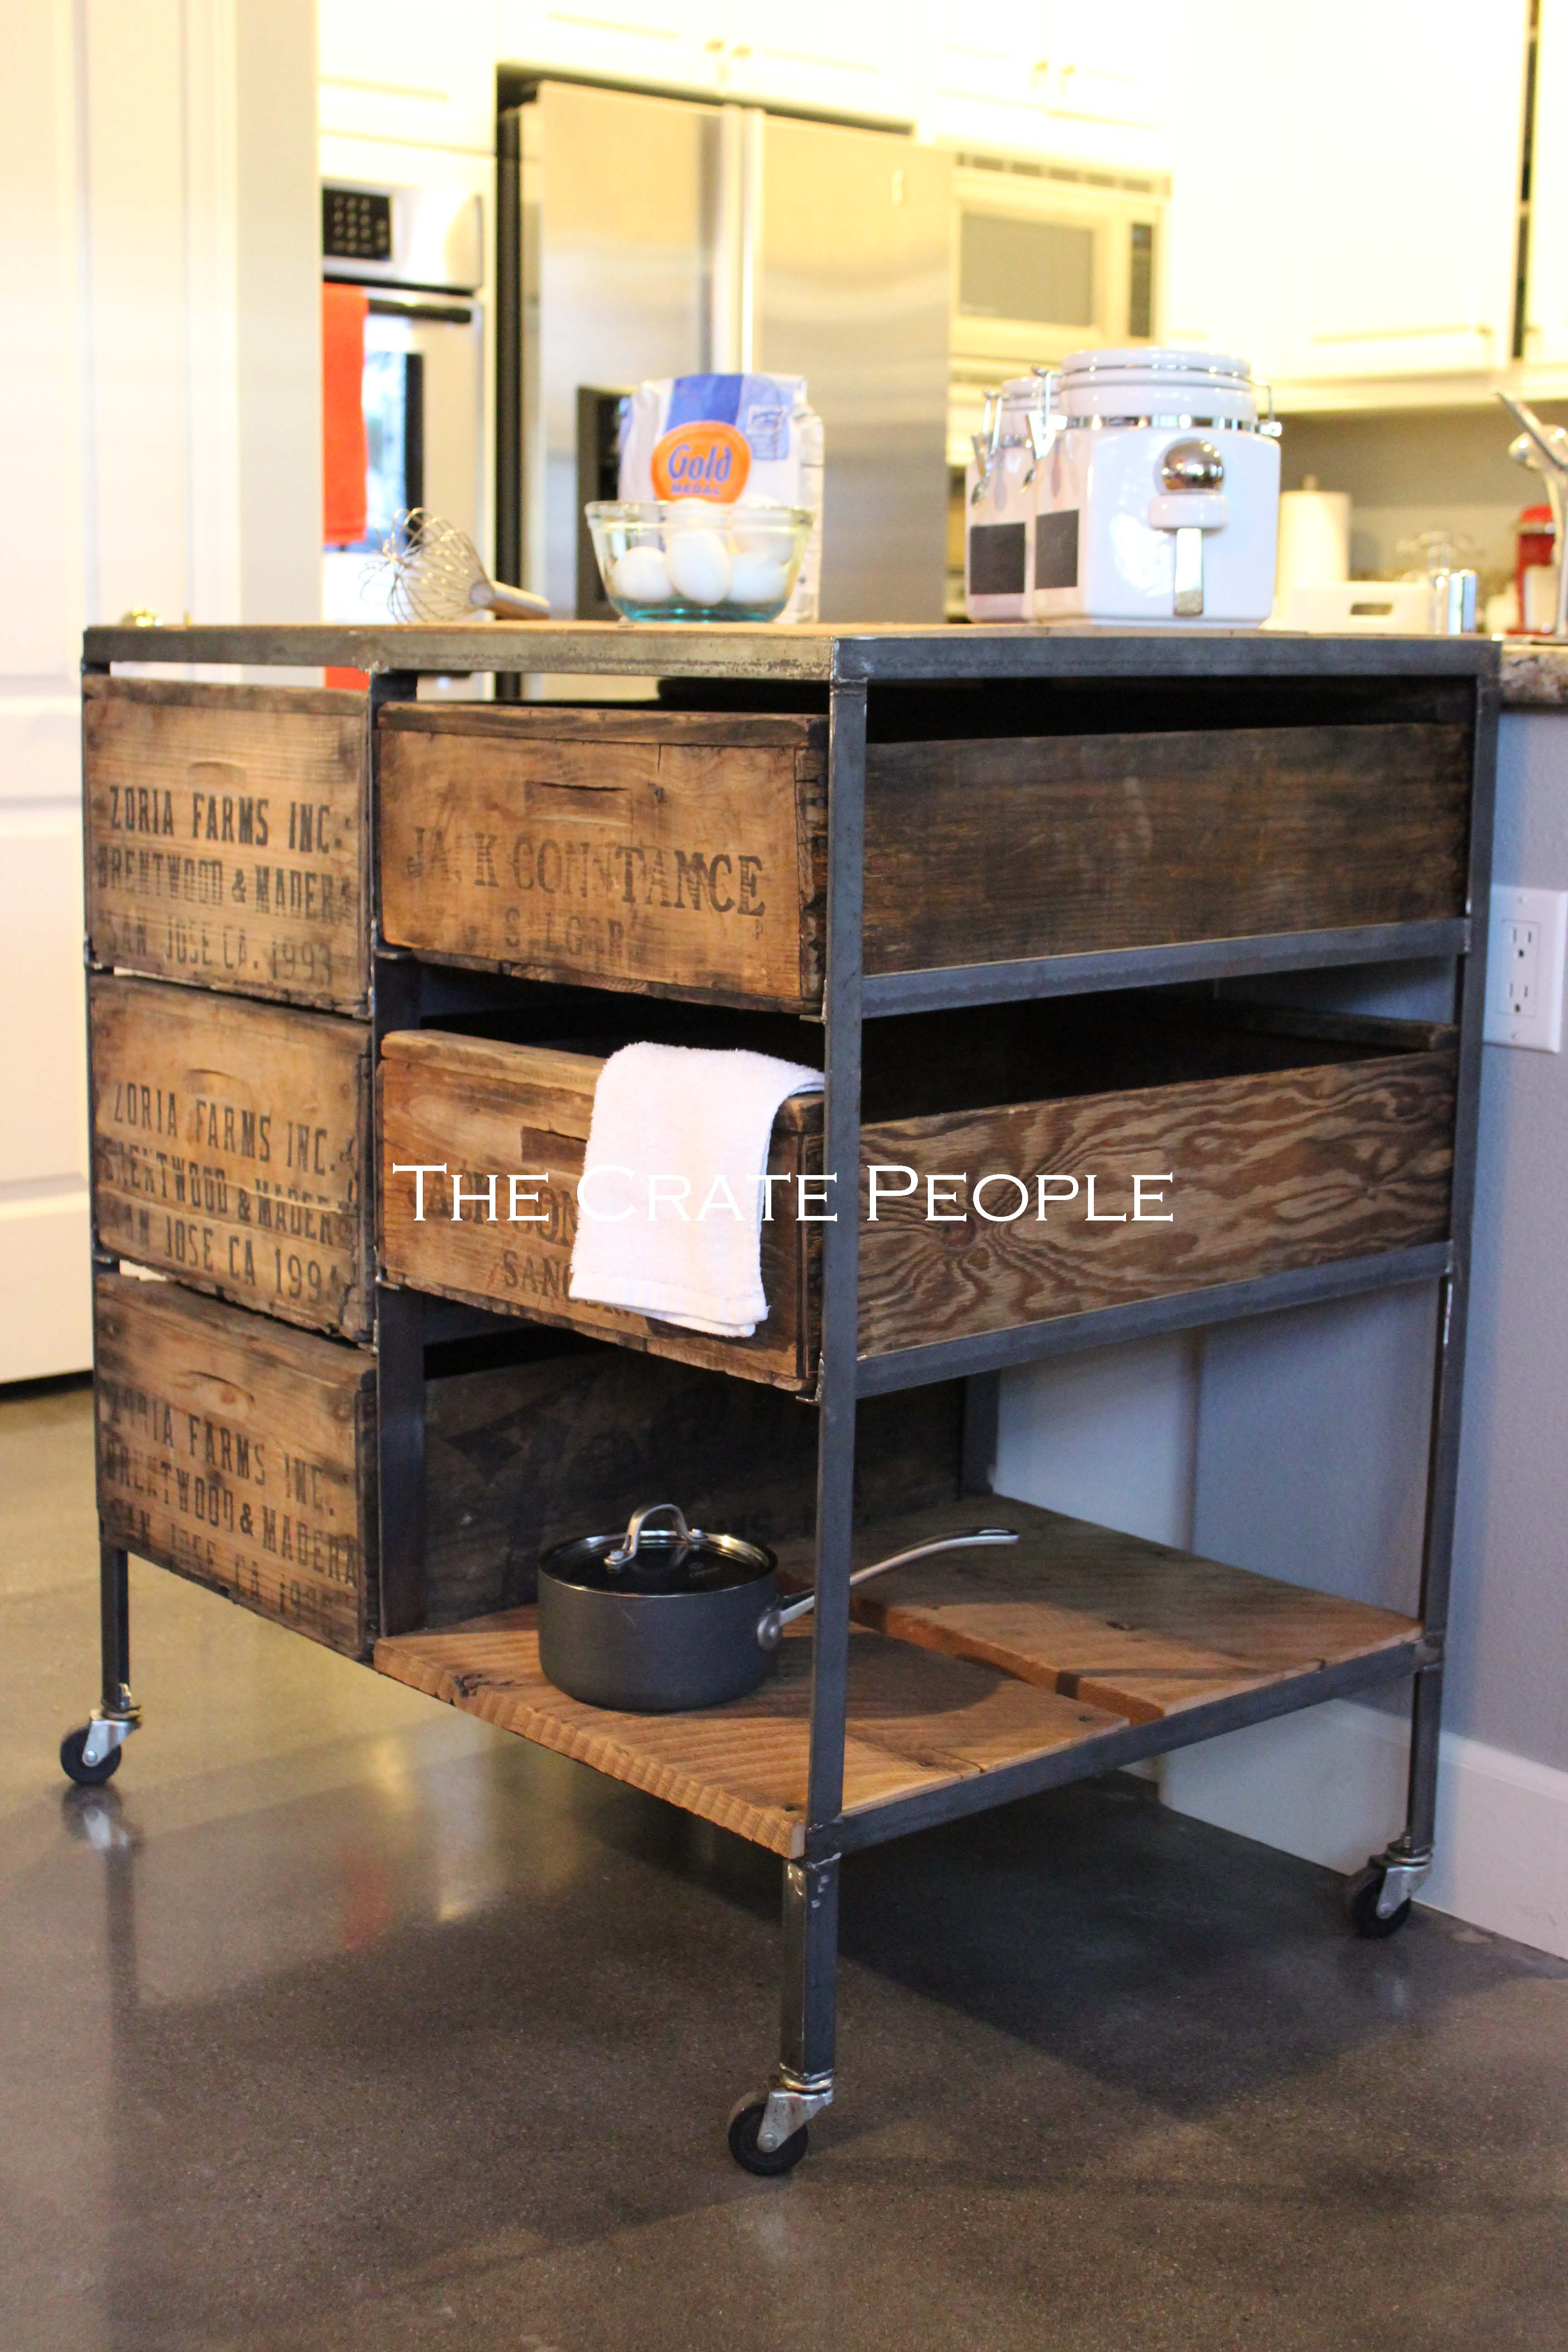 kitchen island crate combo on casters the crate people kitchen island on casters inspiration and design ideas